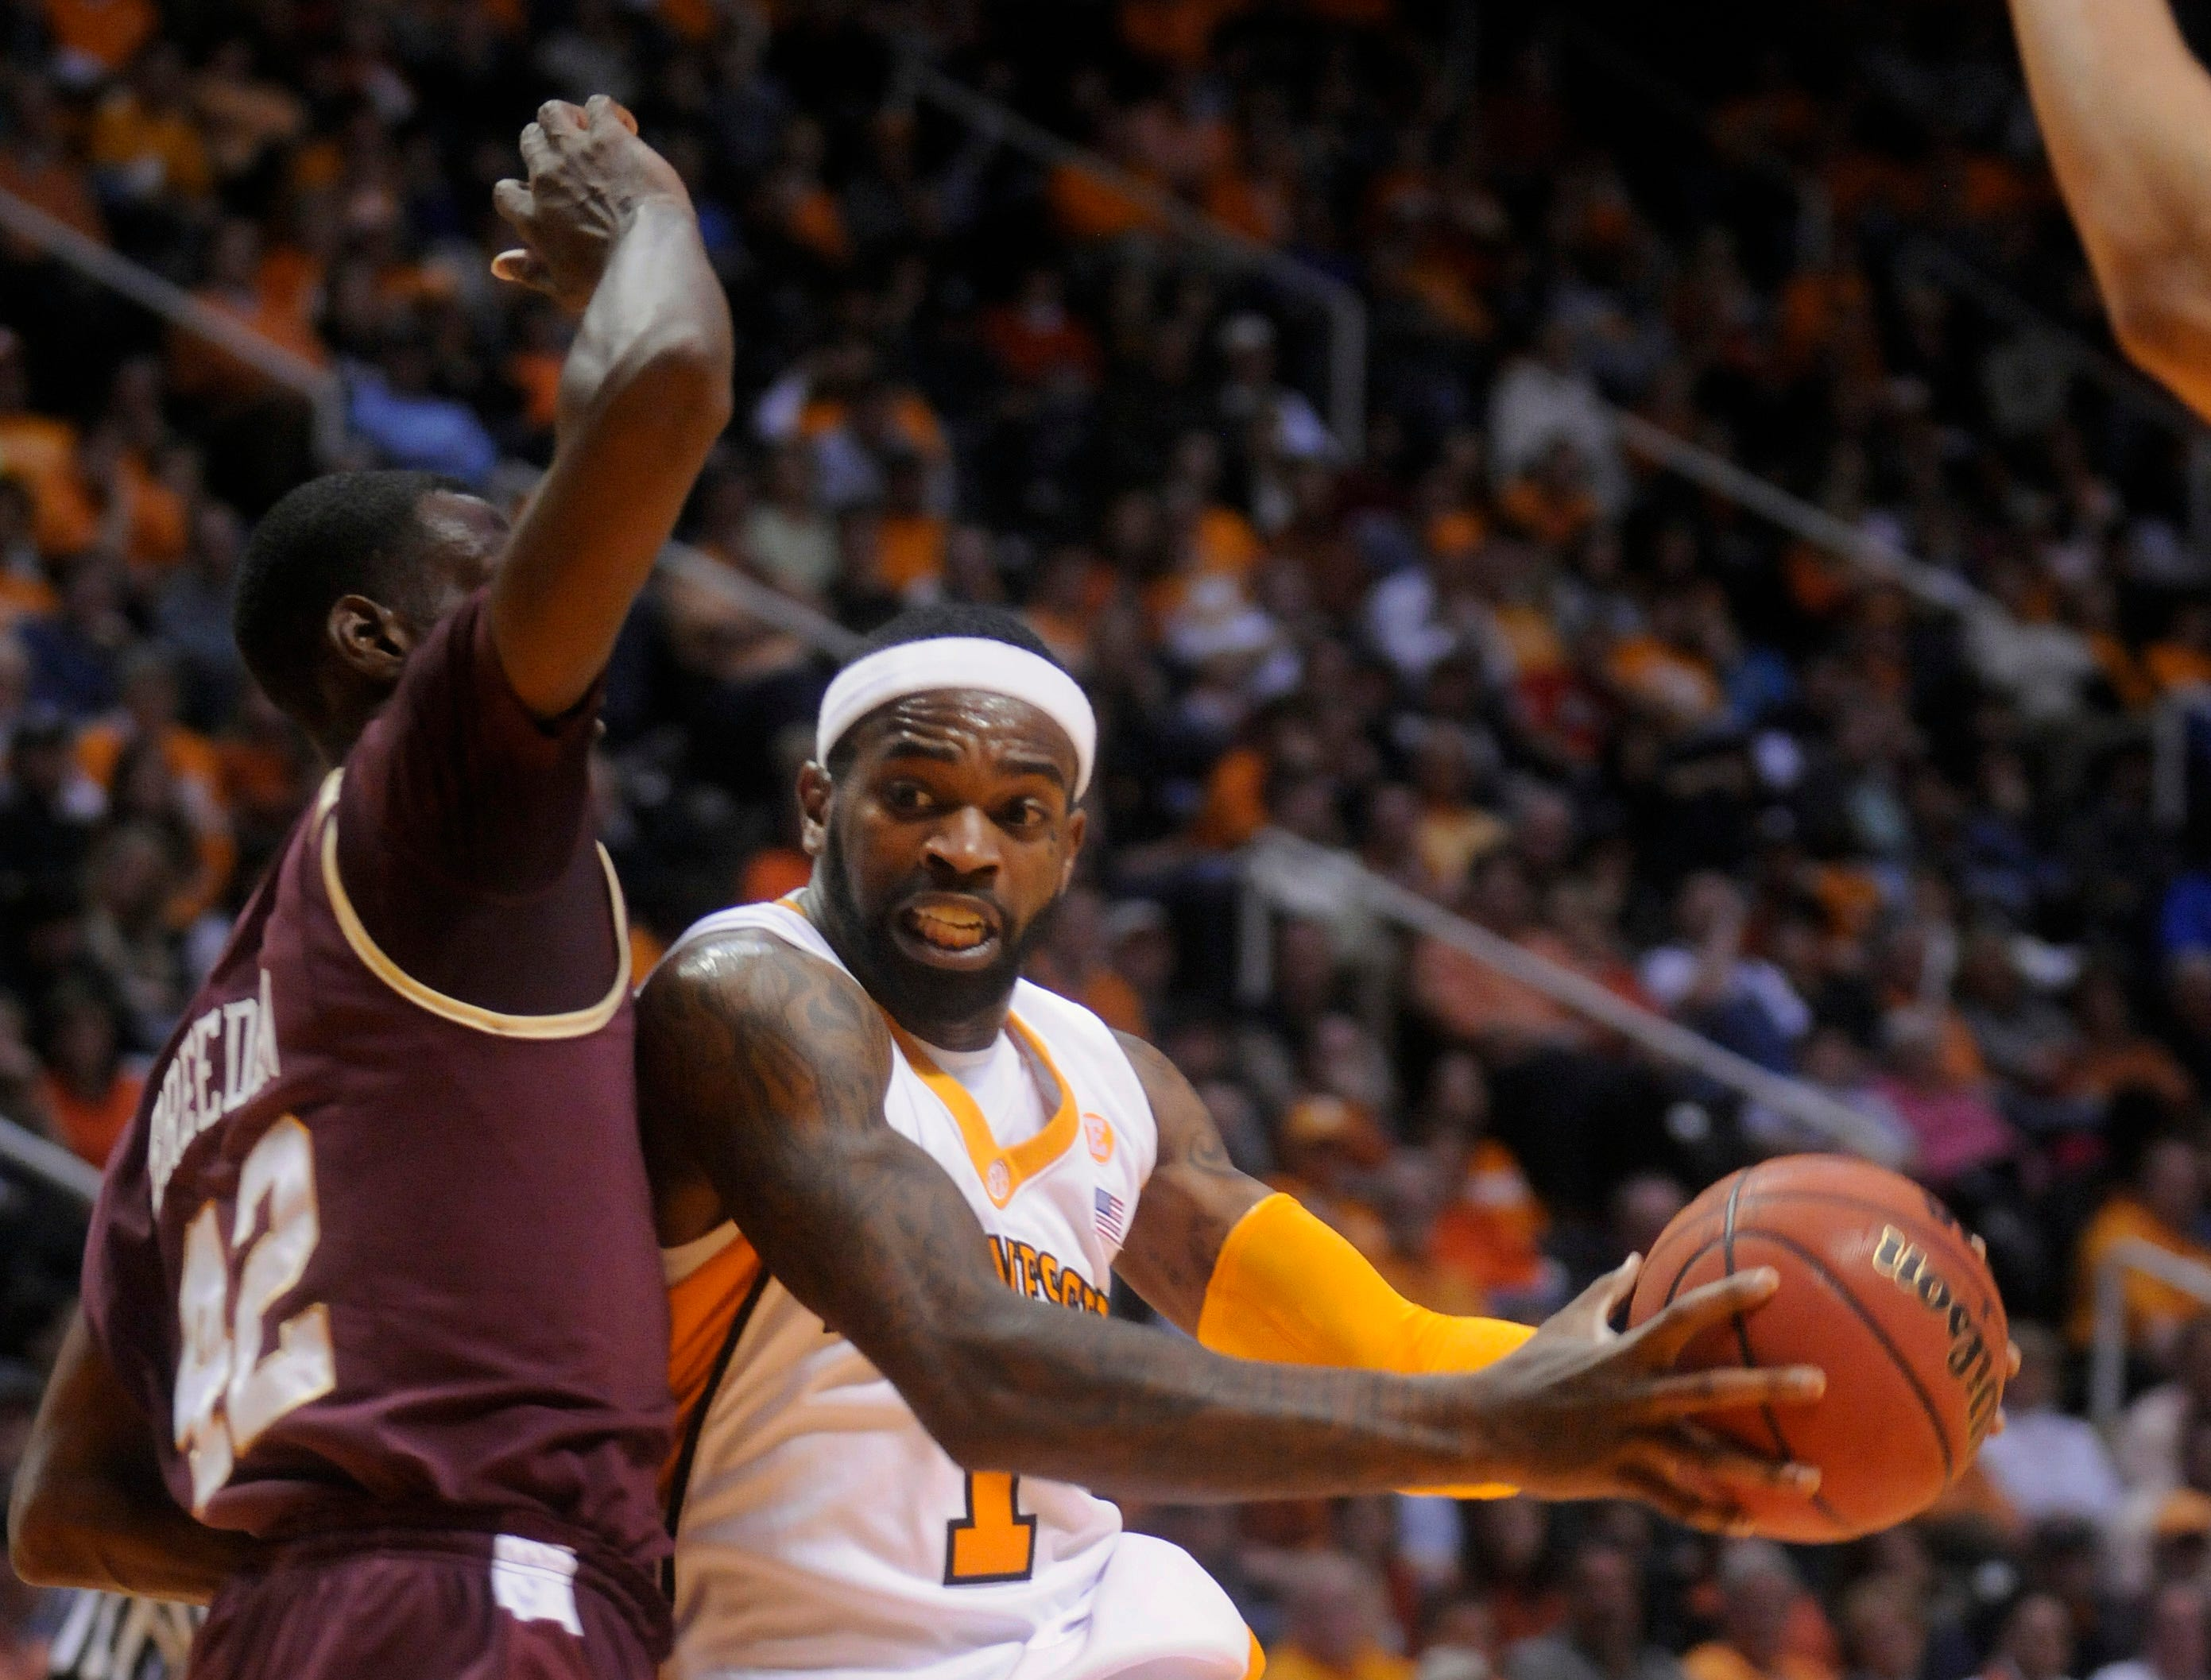 Tennessee guard Tyler Smith (1) works around College of Charleston forward Casaan Breeden (42) in the second half of an NCAA college basketball game in Knoxville, Tenn., Friday., Nov.  27, 2009.